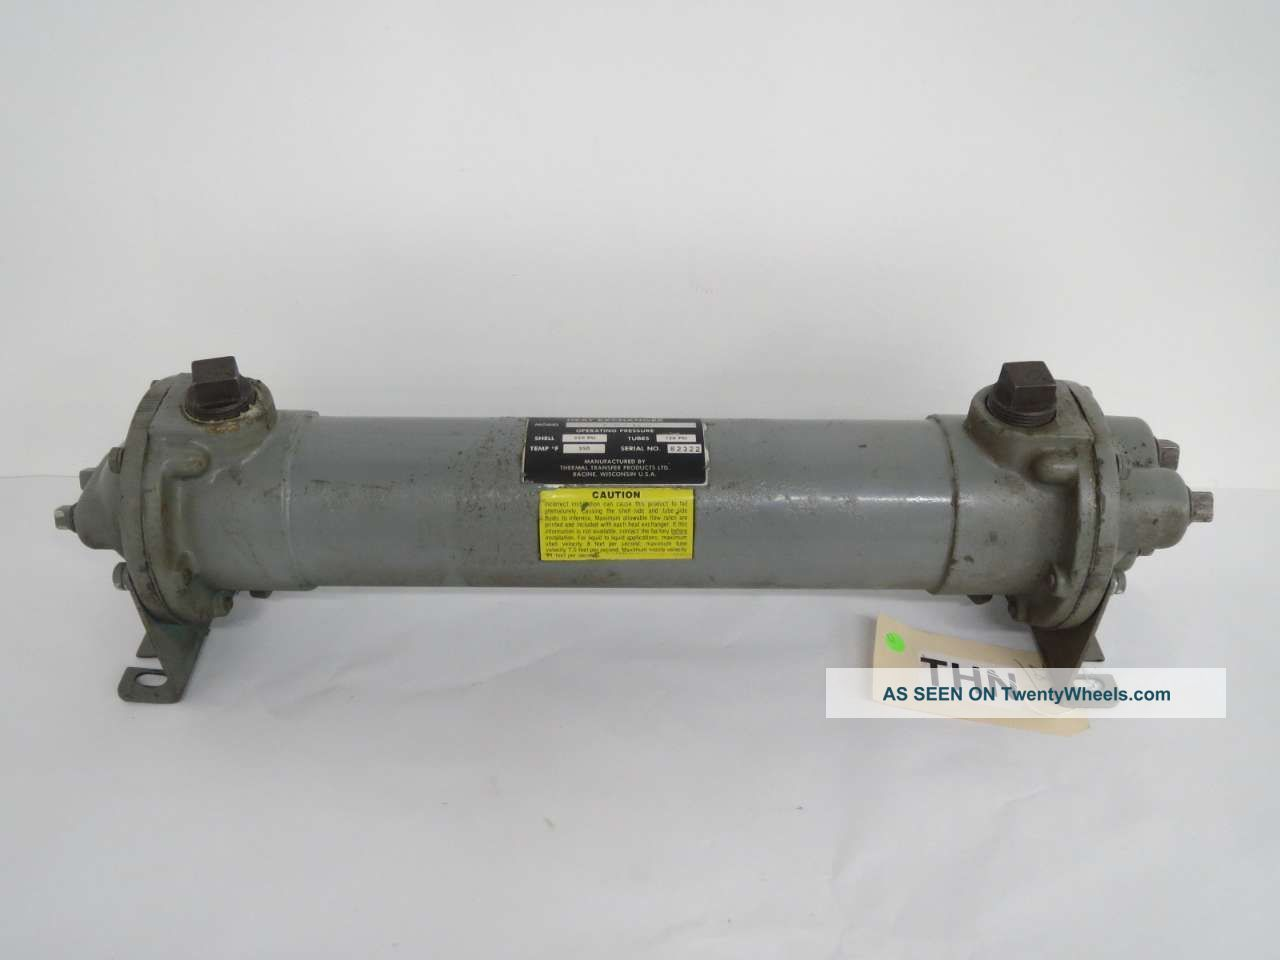 Thermal Transfer B - 702 - A4 - F Npt Fluid Heat Exchanger 1 In B455978 Heating & Cooling Equipment photo